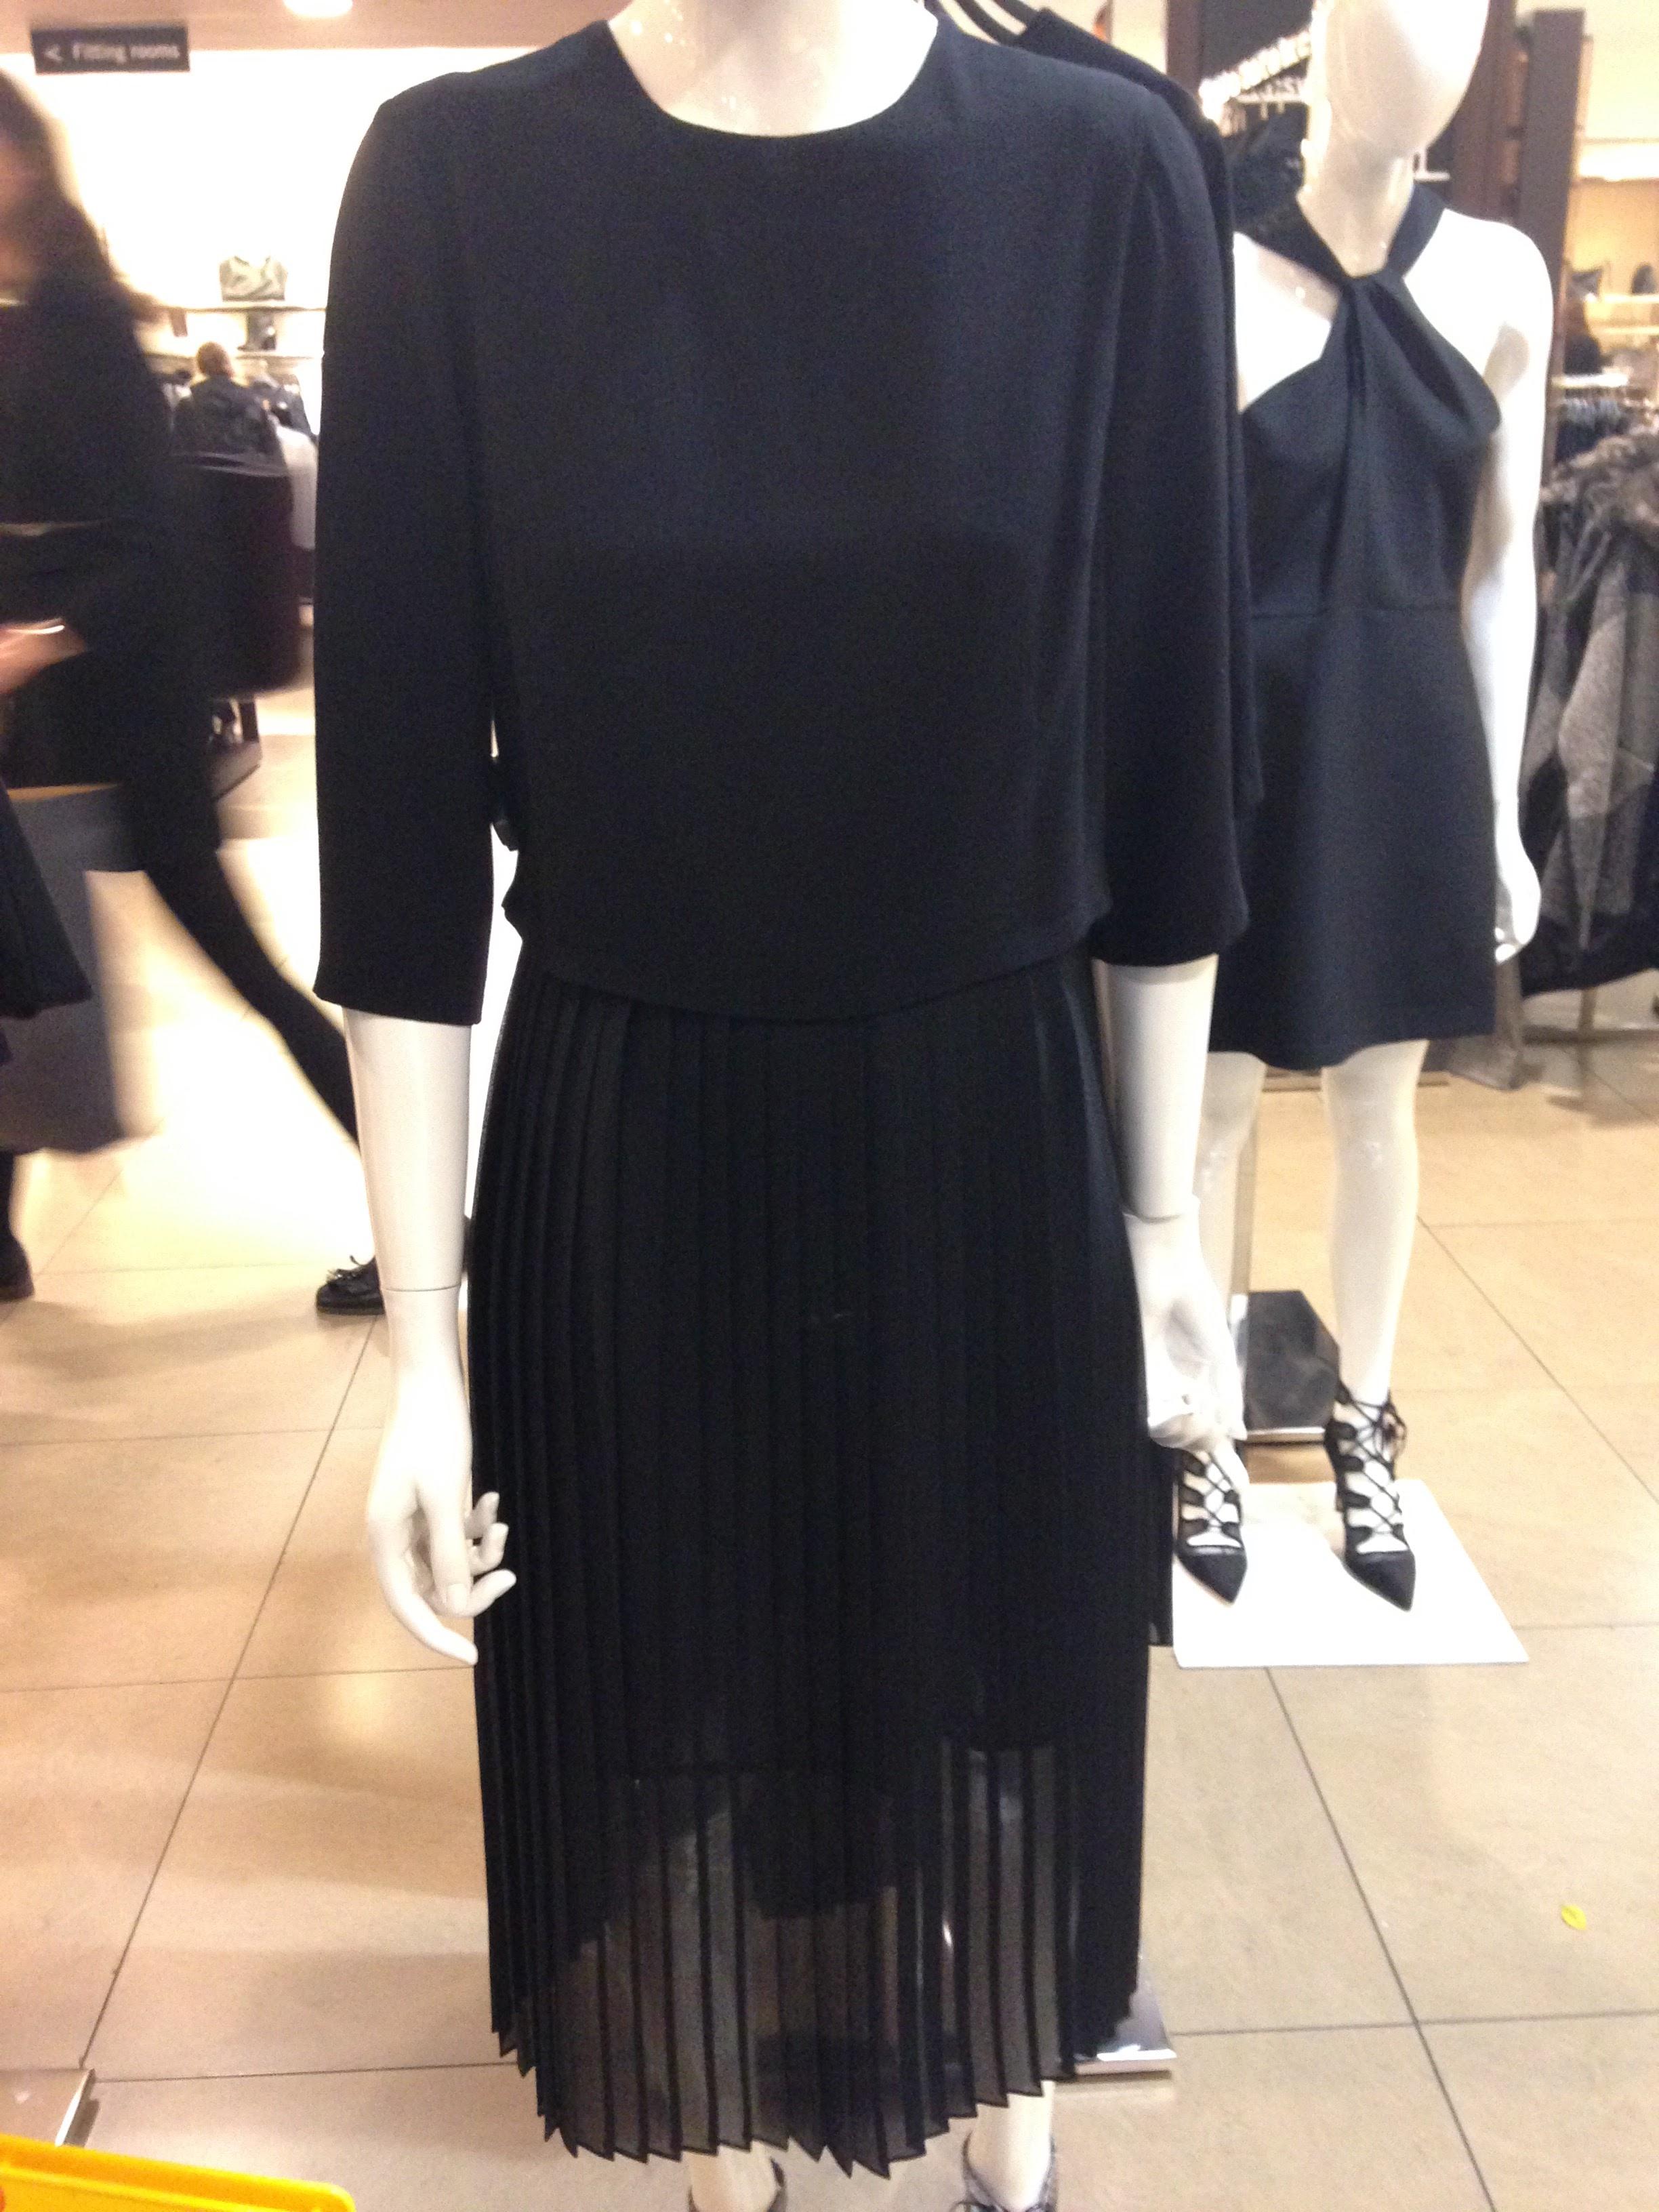 Zara! Gorgeous Black midi dress can be worn casually or dressed up. Good value at €49.99